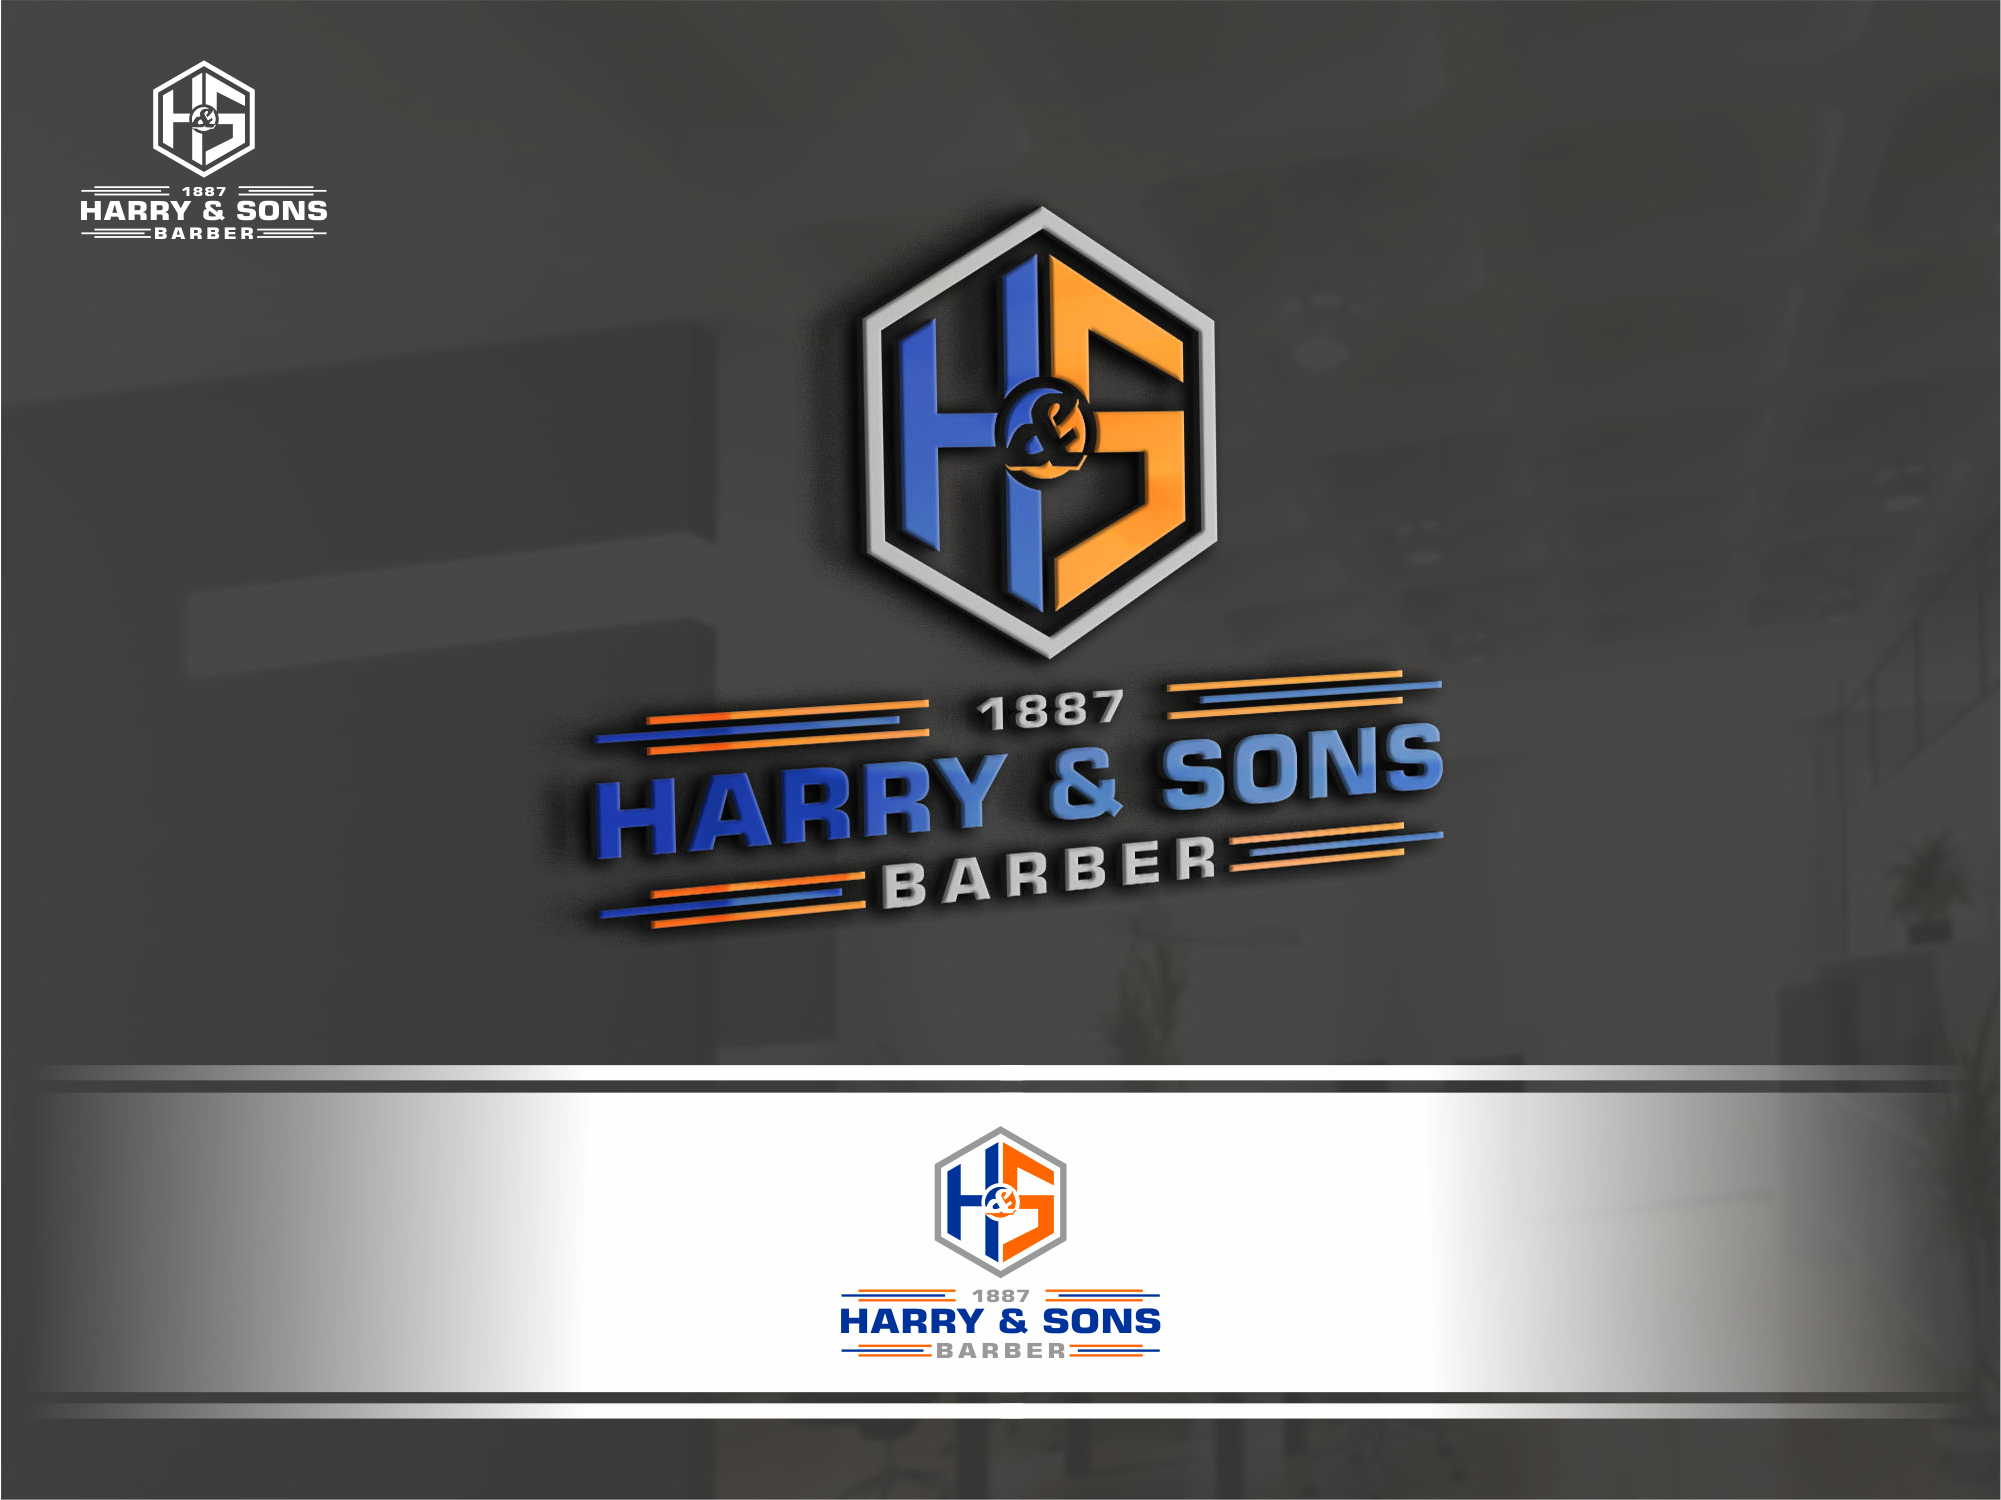 Logo Design by Raymond Garcia - Entry No. 41 in the Logo Design Contest Captivating Logo Design for Harry and Sons Barber.